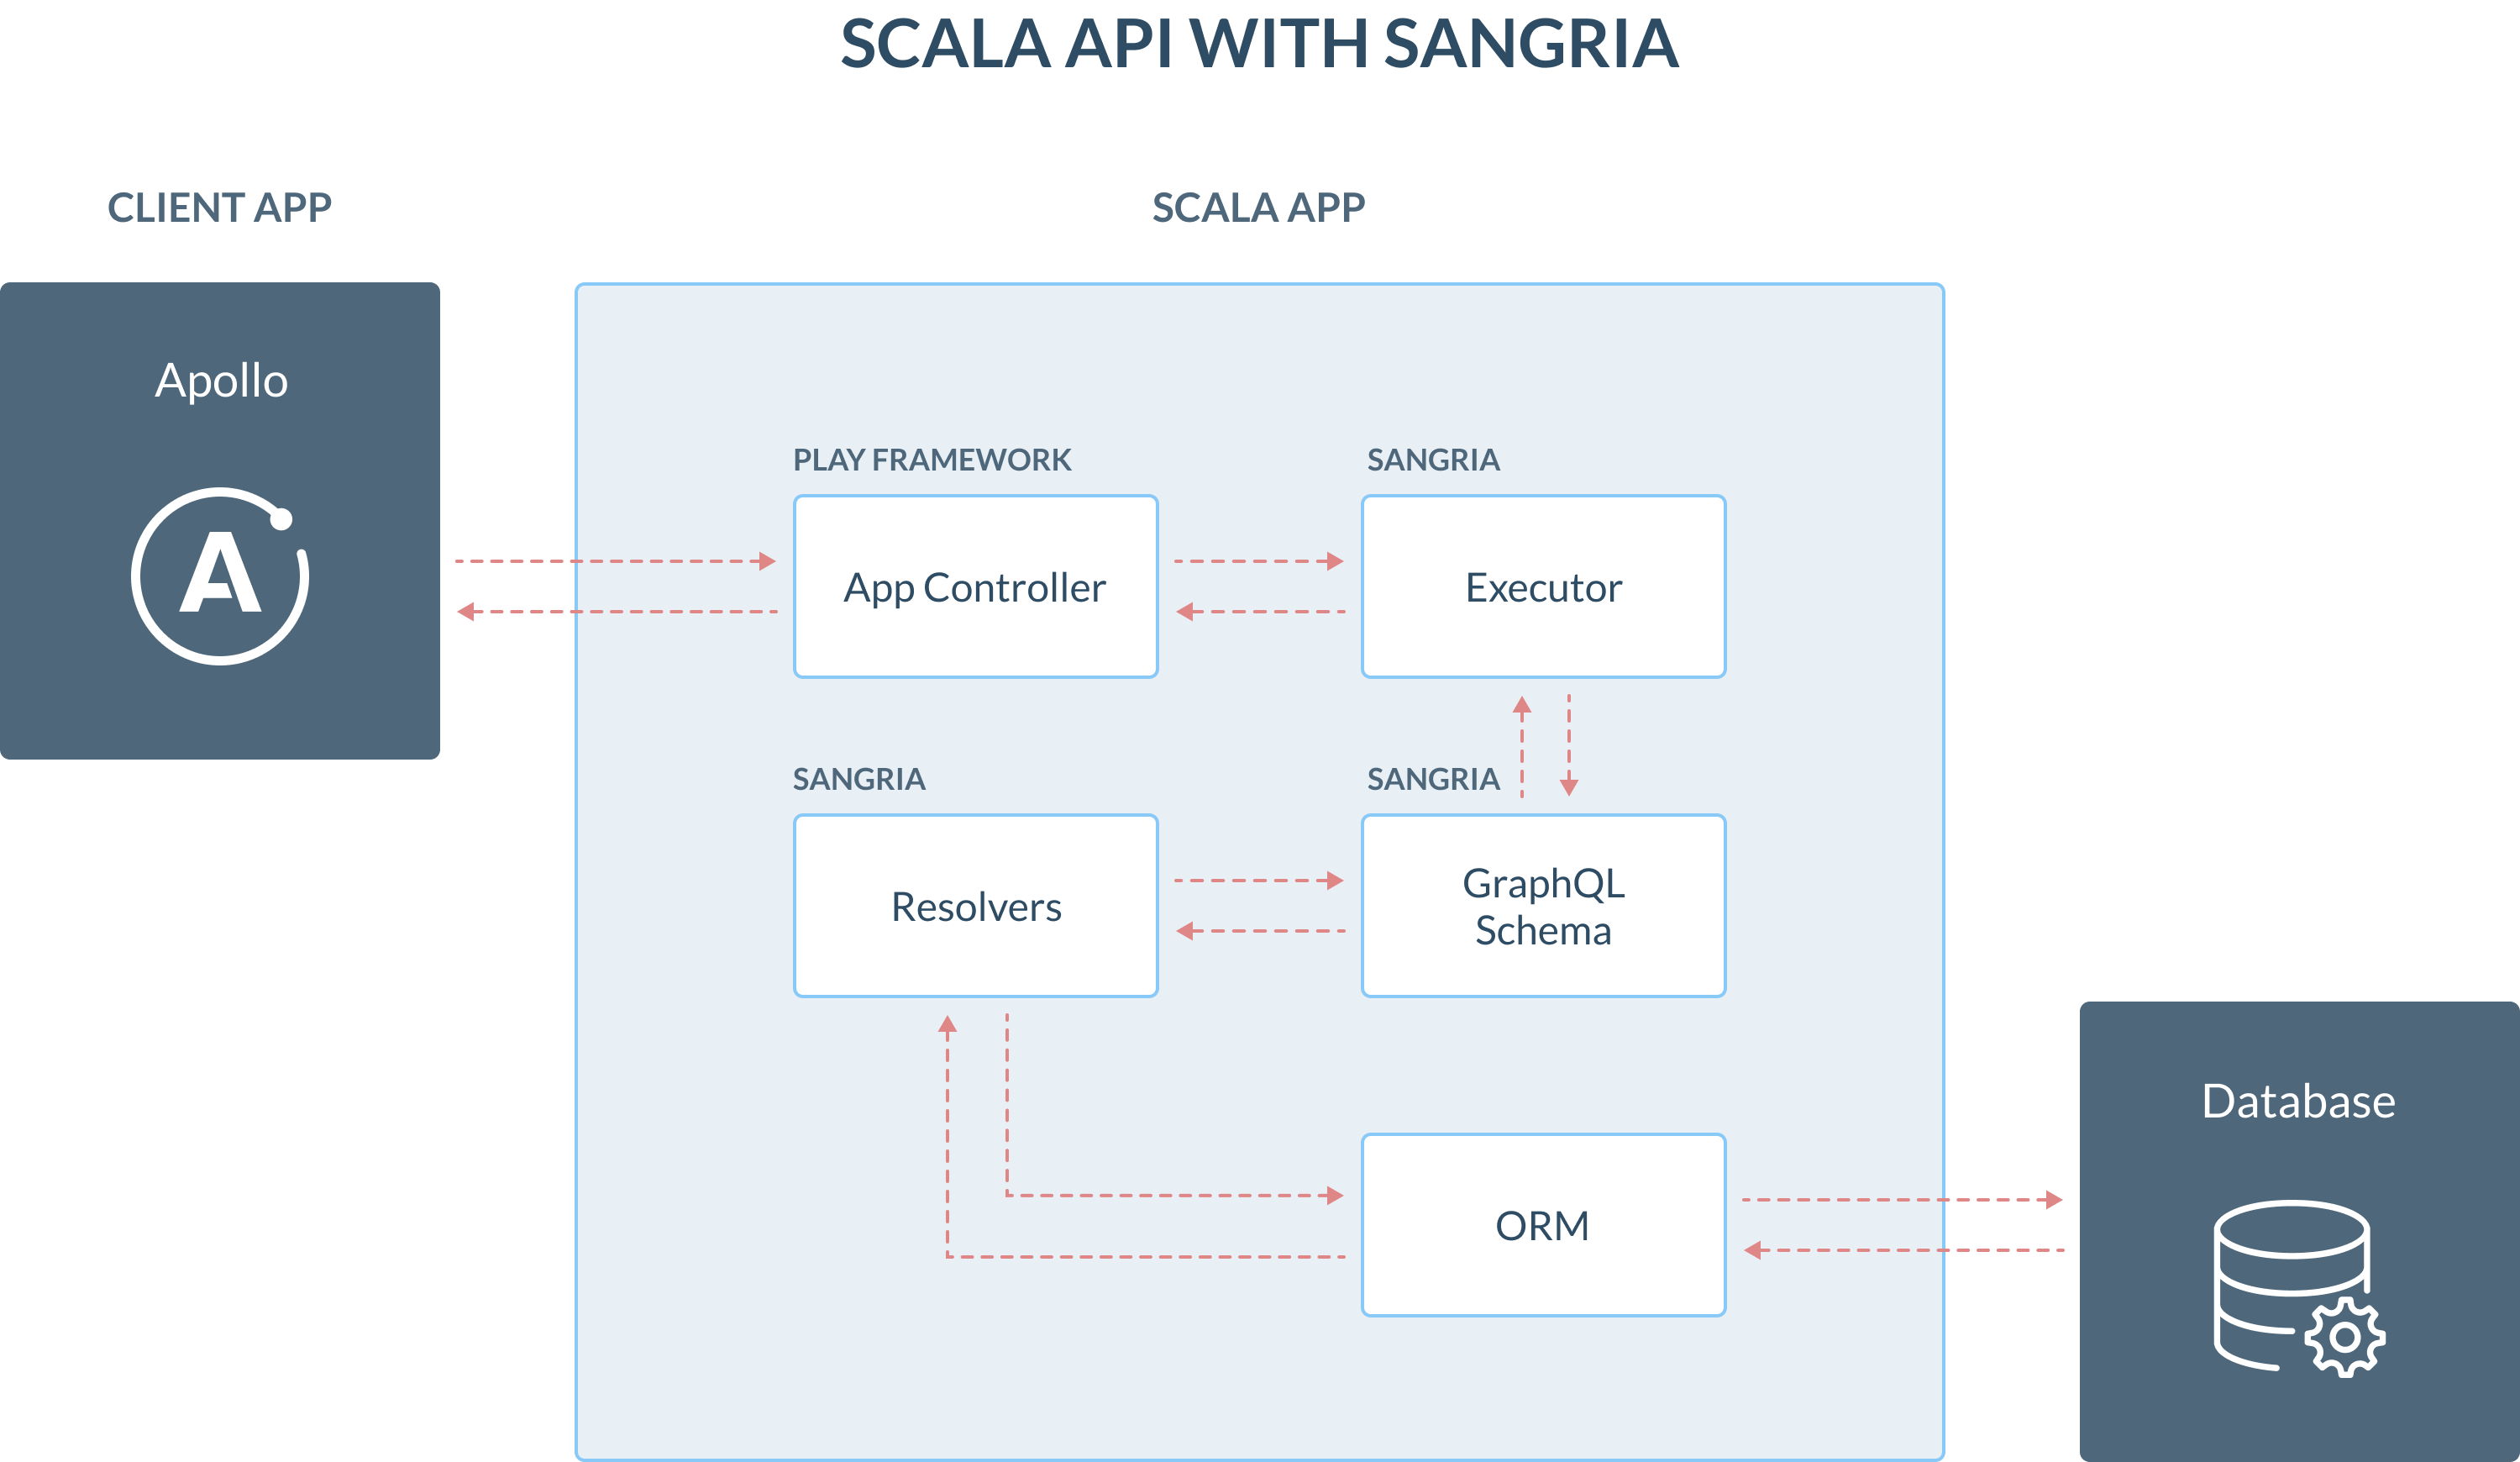 The flow of actions from the client application to a backend API built with Scala and Sangria